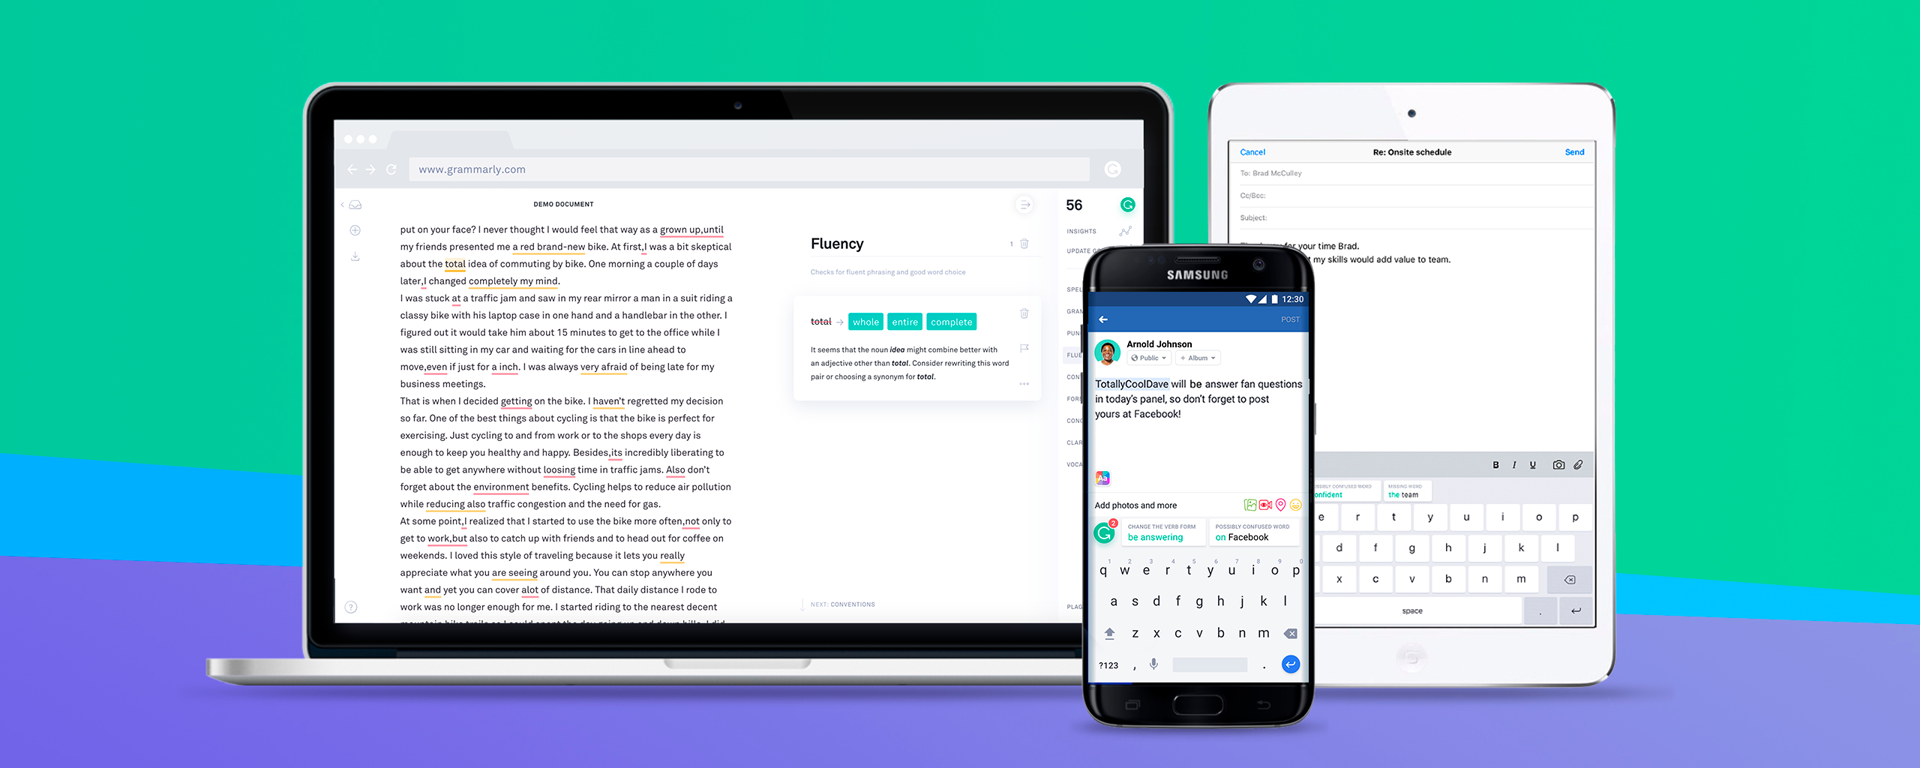 How To Deactivate Grammarly Account